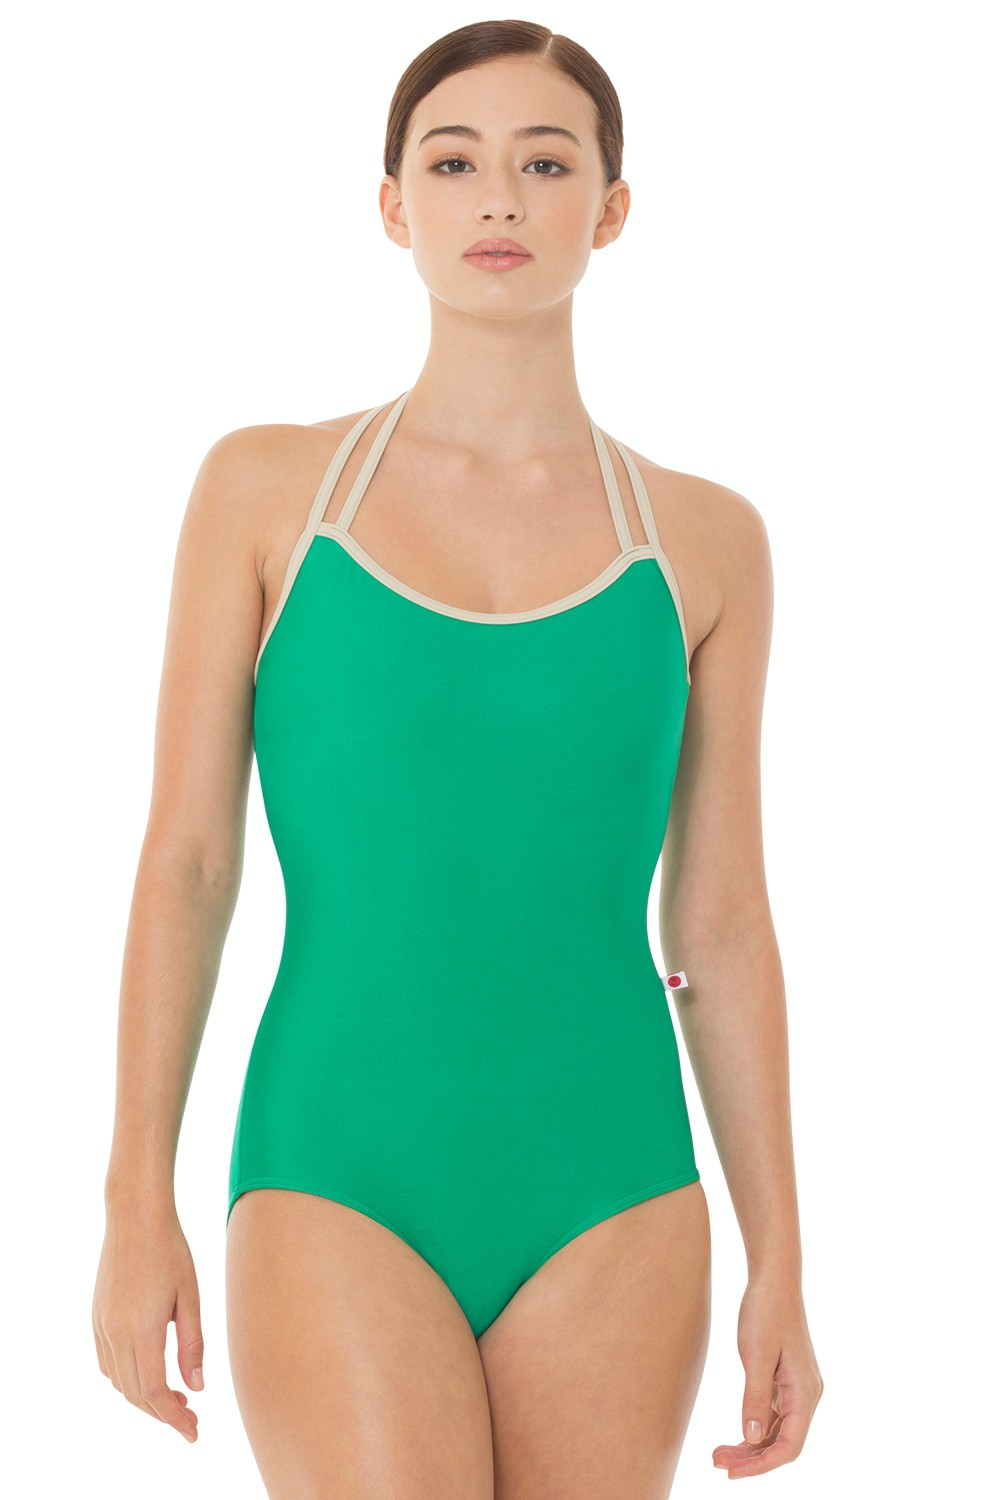 lena - leotards - personalized - women